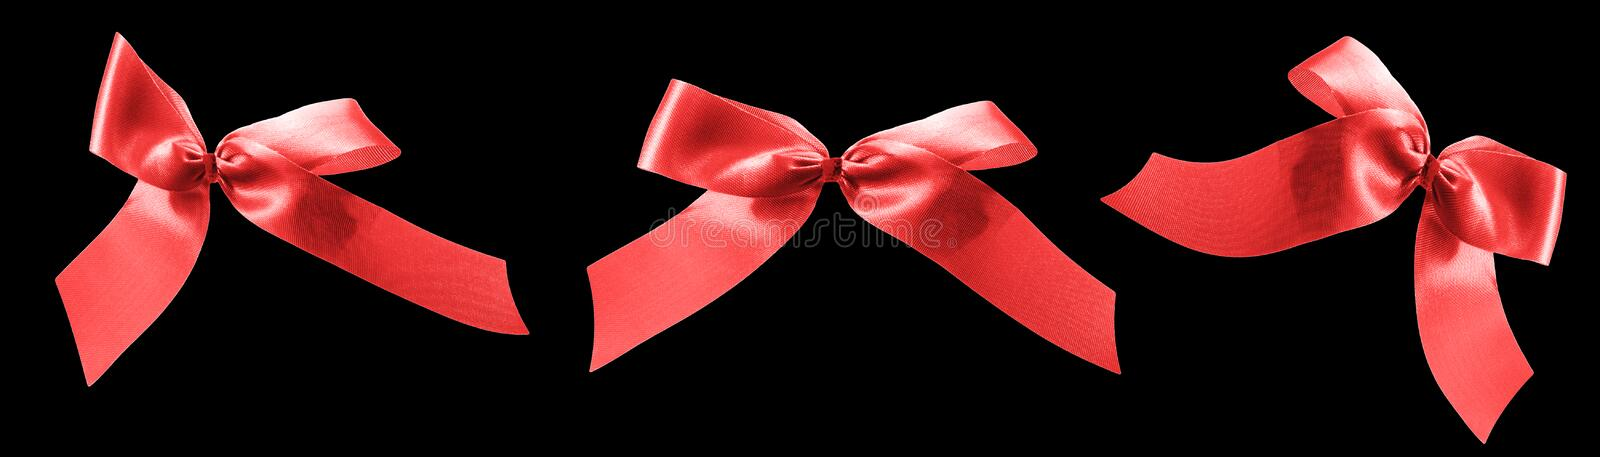 Download Red Ribbon Bows For Valentines Gifts Stock Photo - Image: 17963408